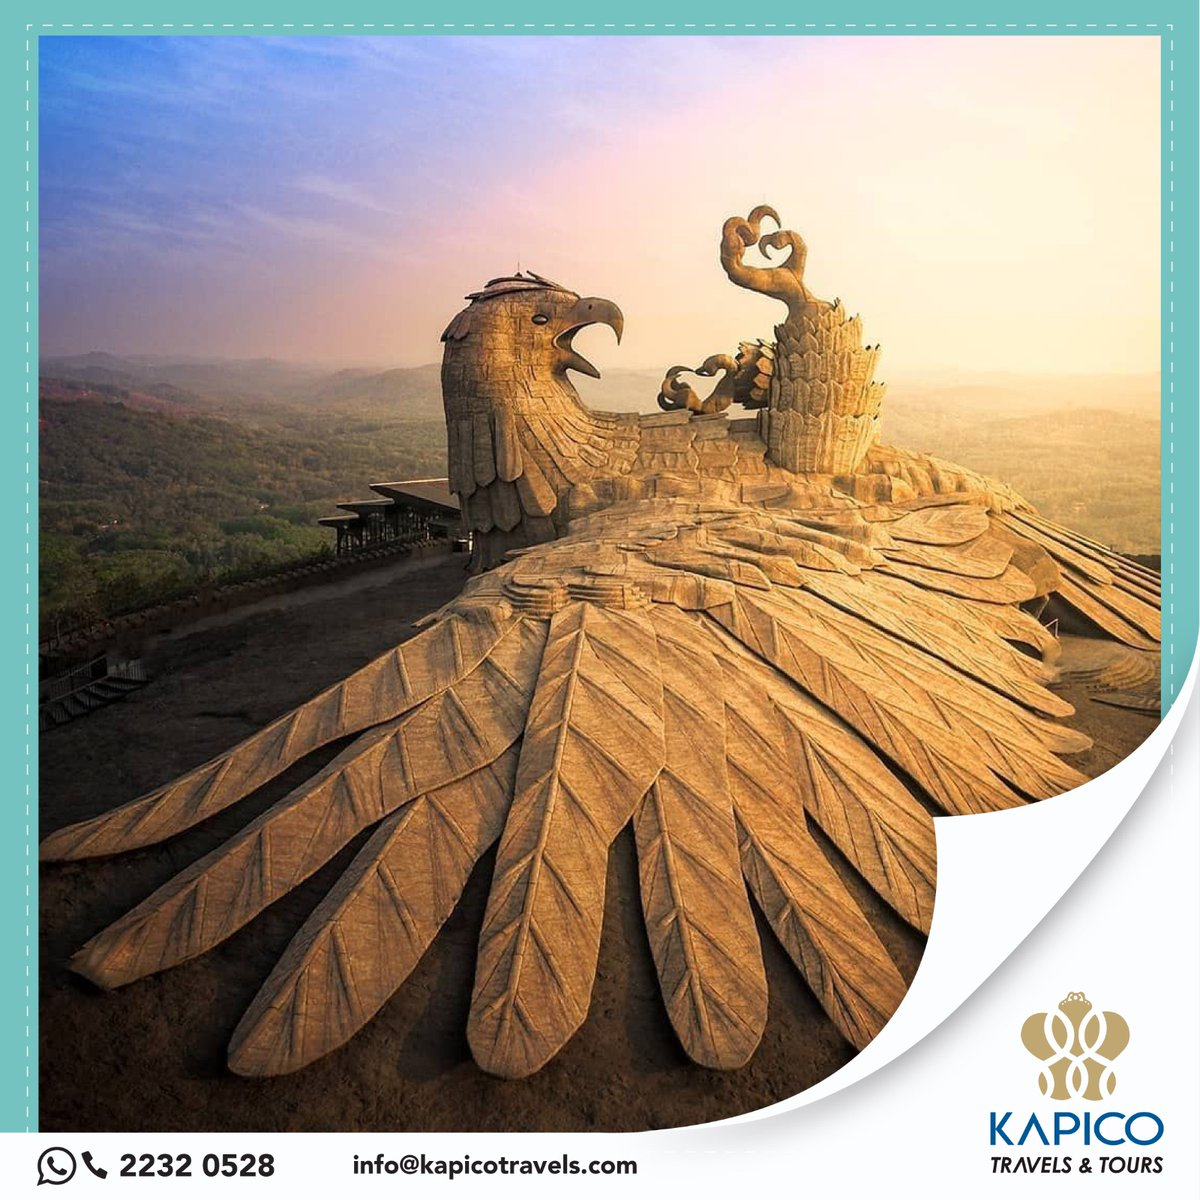 Jatayu Earth's Center, also known as Jatayu Nature Park or Jatayu Rock,is a park and tourism center at Kollam district of #Kerala, India. Jatayu Nature Park is holding the distinction of having the world's largest bird sculpture.  #kapico #kapicotravels #golater #travels #tourism https://t.co/3E2GRzPGP8